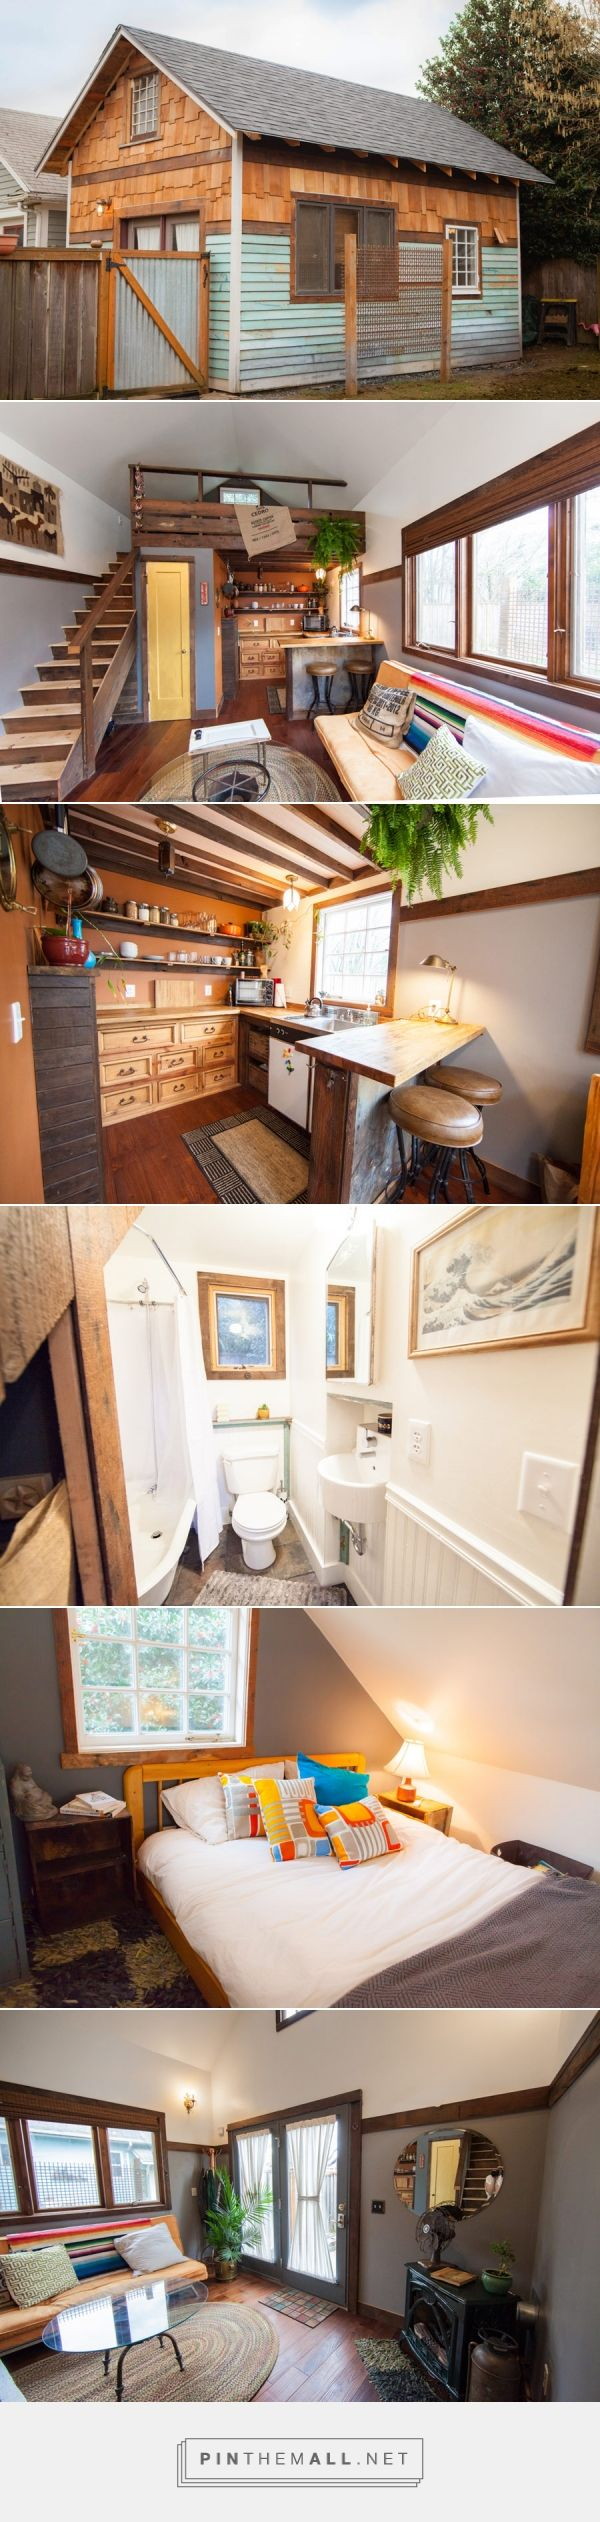 A Tiny Home Built From Red Old Garage In Portland Oregon Jenny And Michael S House